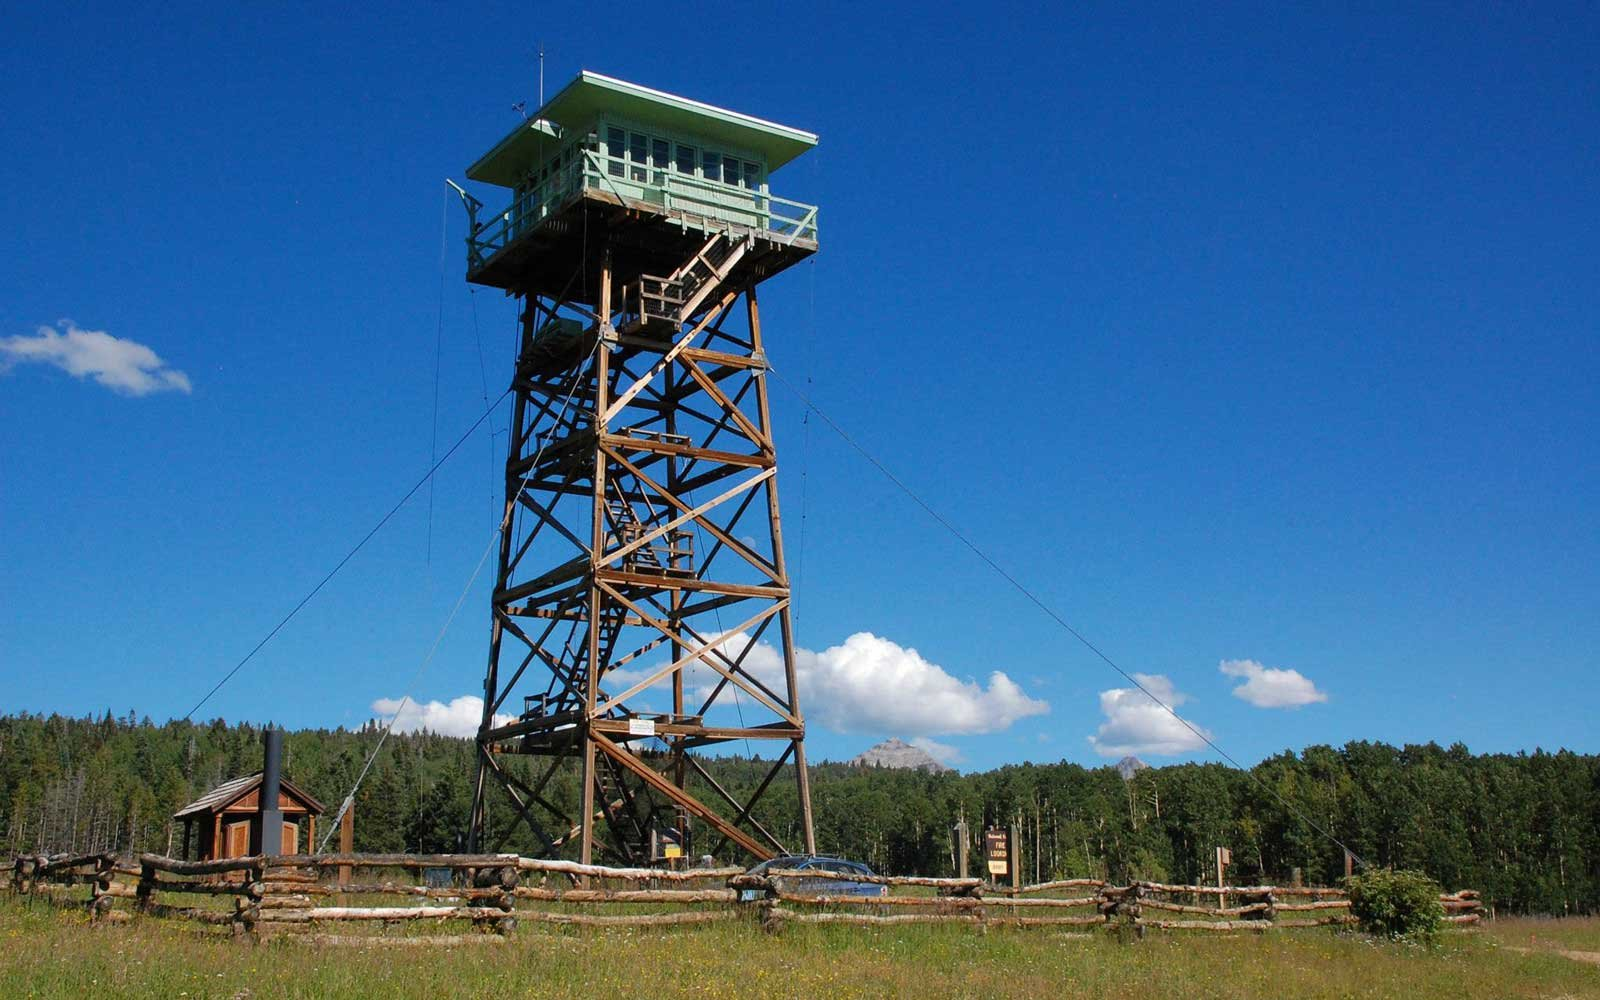 Jersey Jim Fire Lookout Tower, Colorado